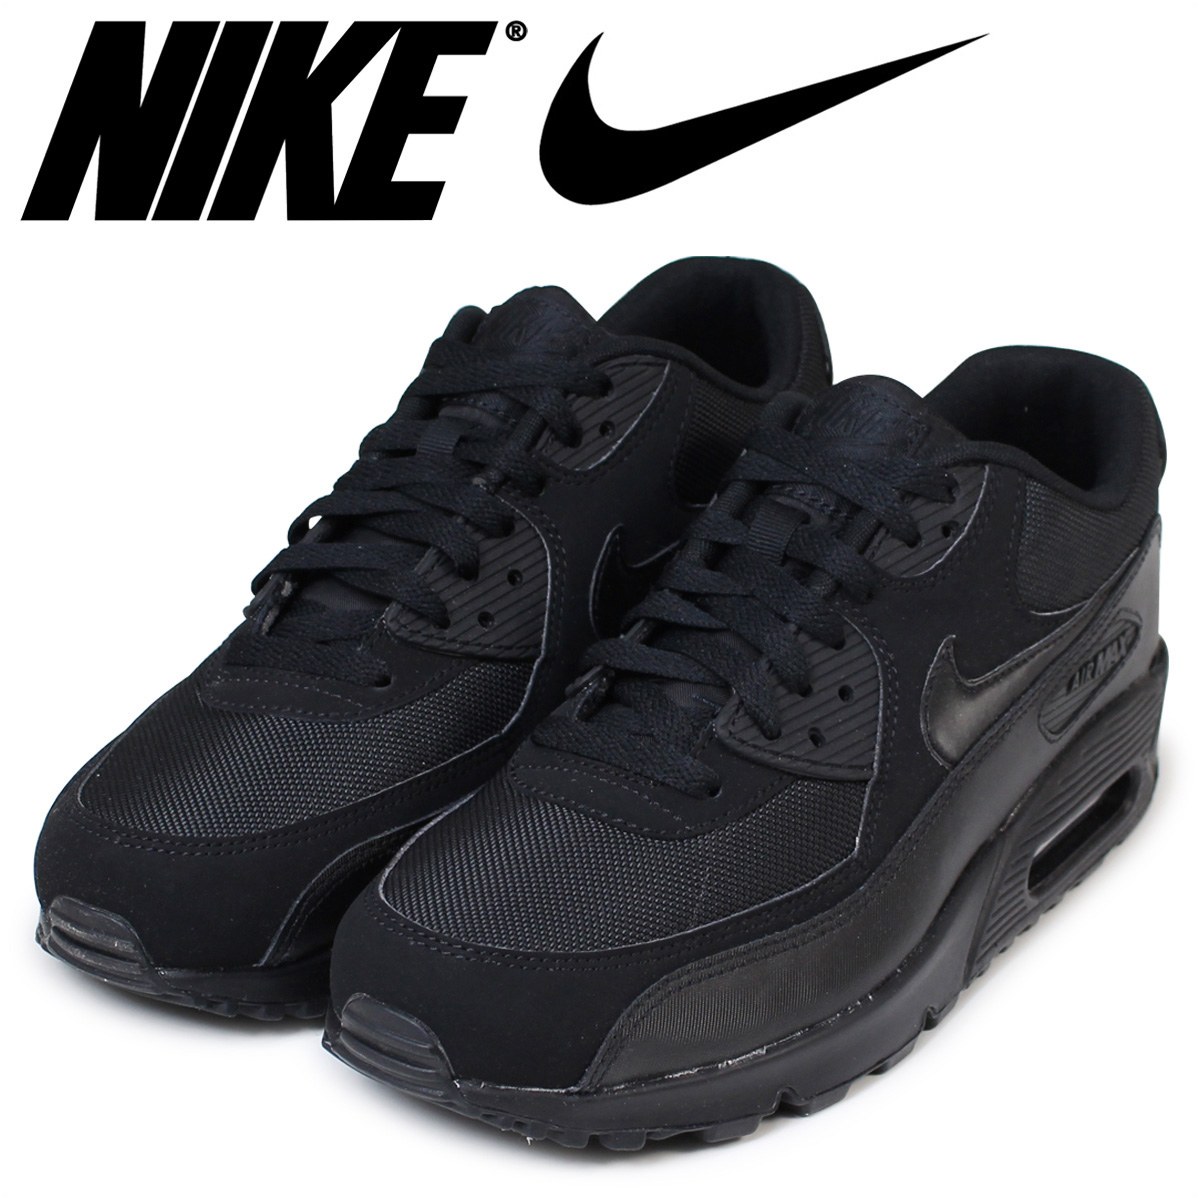 NIKE Kie Ney AMAX 90 essential sneakers men AIR MAX 90 ESSENTIAL 537,384 090 black black